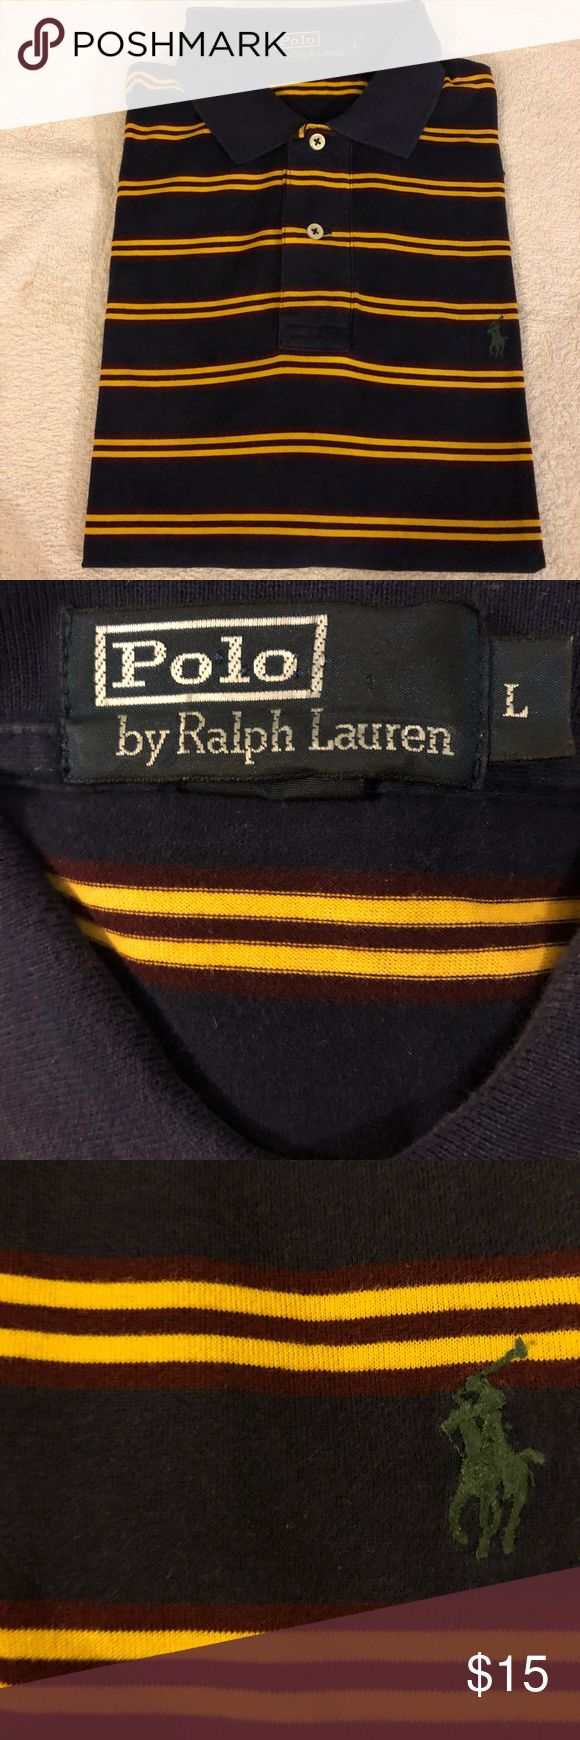 Polo Ralph Lauren Navy, Gold & Red Stripe Shirt L Polo Ralph Lauren Navy Blue, Dark Red and Gold Stripe Short Sleeve Polo Shirt size L! Great condition! Please make reasonable offers and bundle! Ask questions! :) Polo by Ralph Lauren Shirts Polos